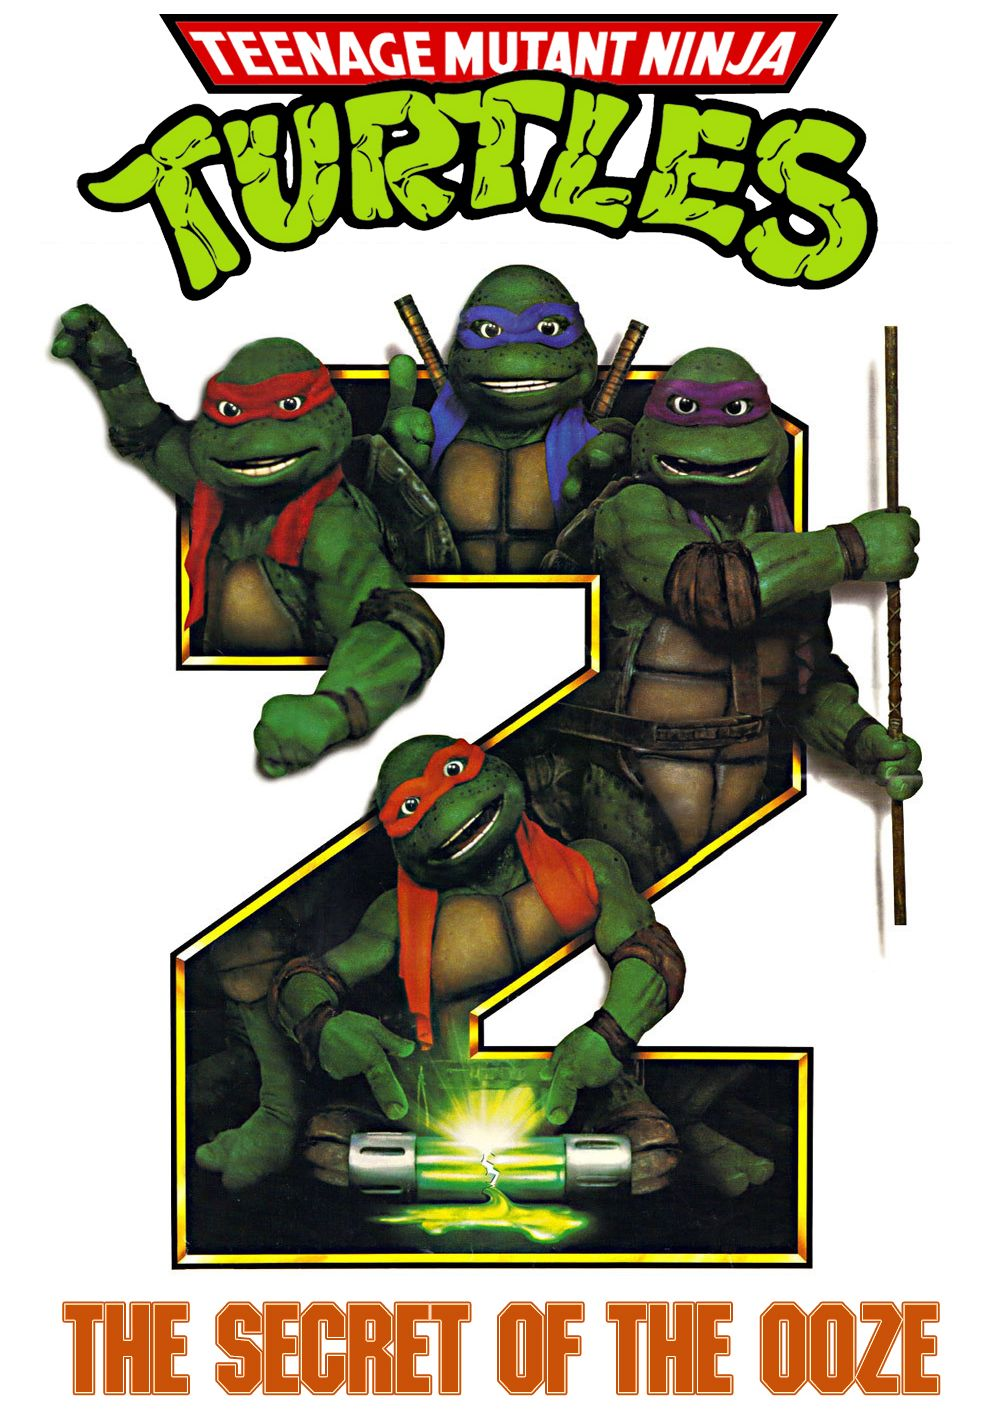 Teenage Mutant Ninja Turtles 2 The Secret Of The Ooze 1991 Teenage Mutant Ninja Turtles Art Teenage Mutant Ninja Mutant Ninja